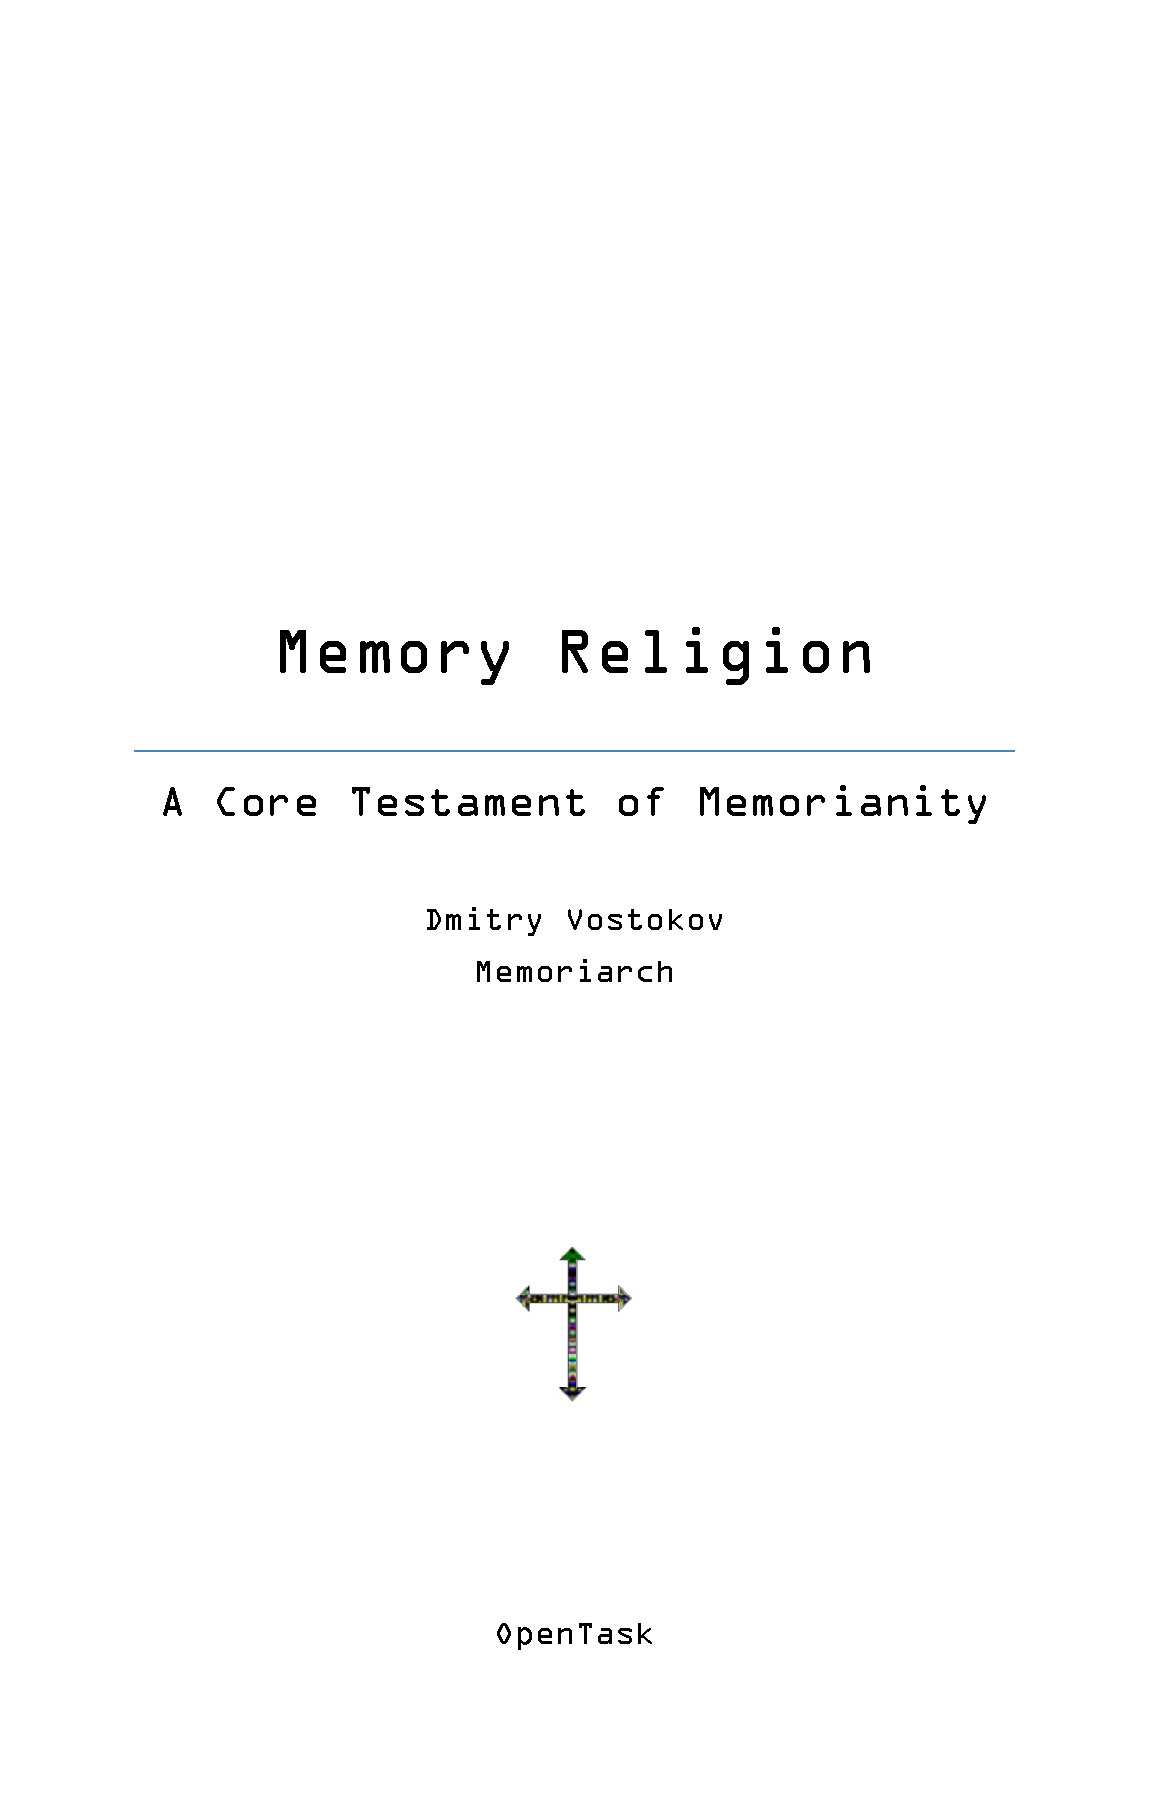 Core Testament of Memorianity (Memory Religion) Page 1